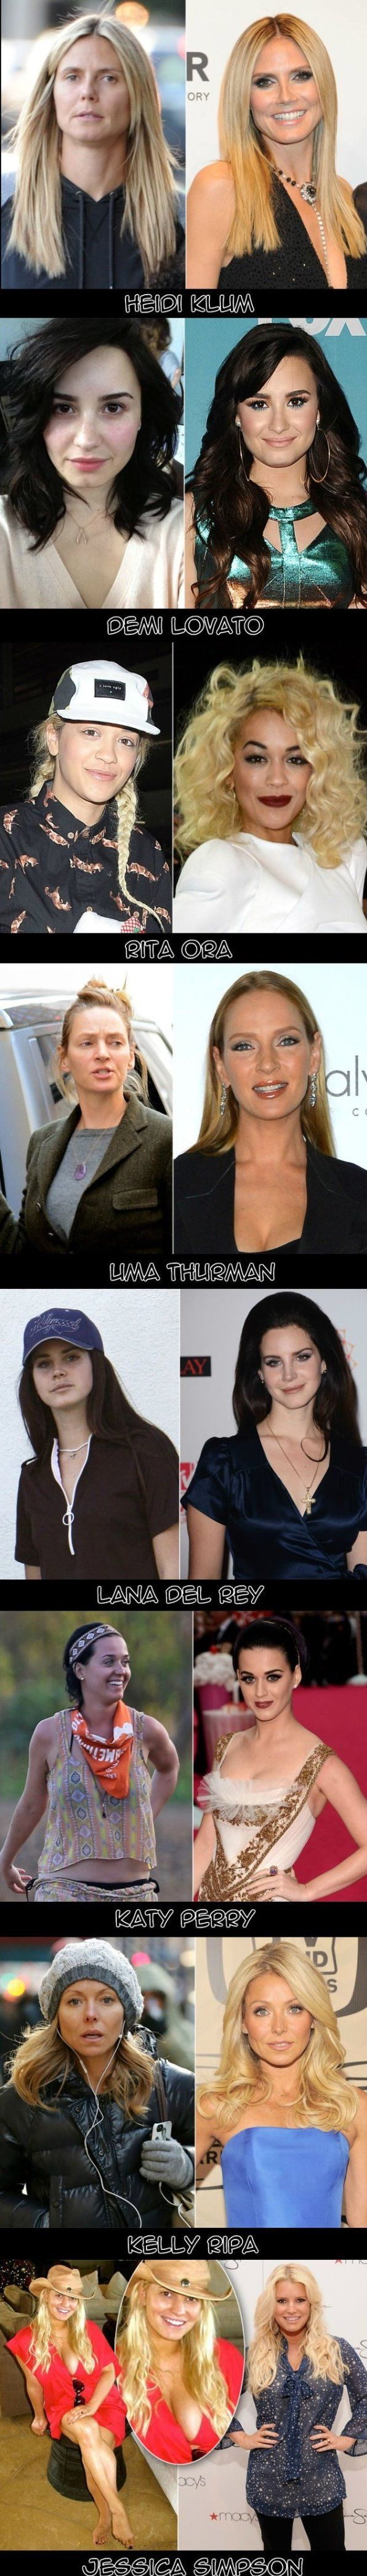 Some Celebrities Without Makeup Www Funny Pictures Blog